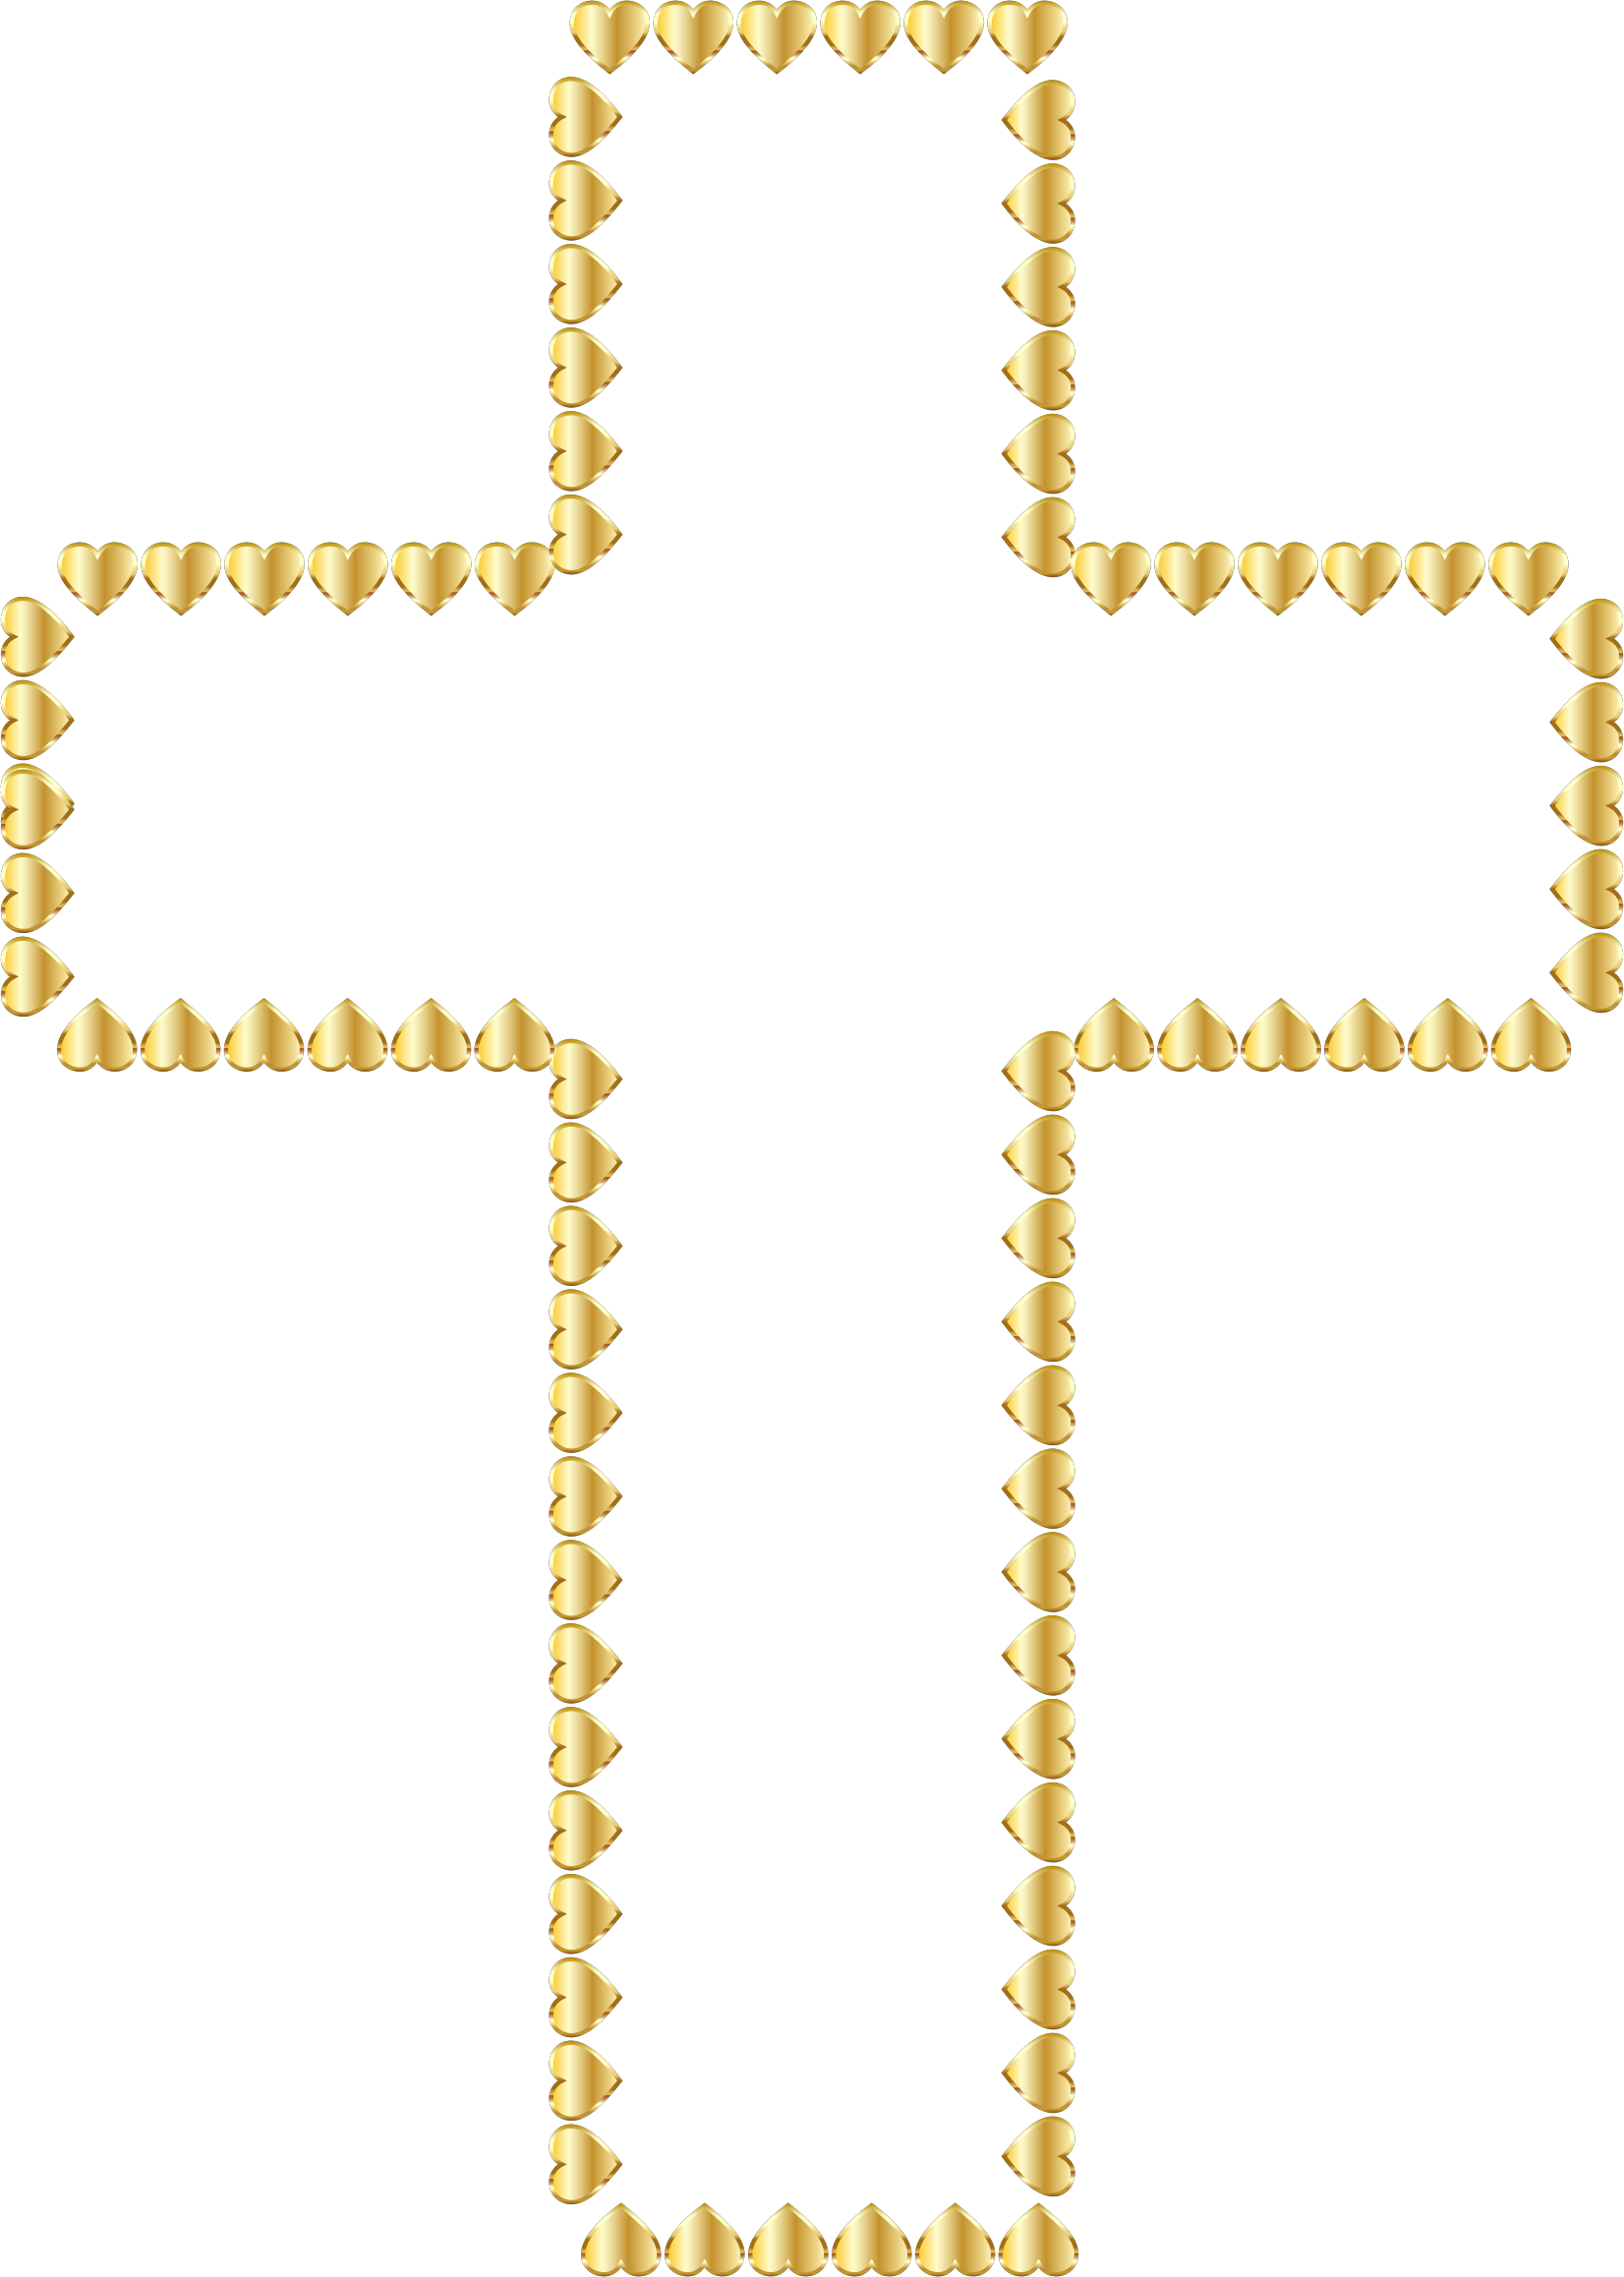 jpg royalty free library Cross hearts no background. Golden clipart transparent